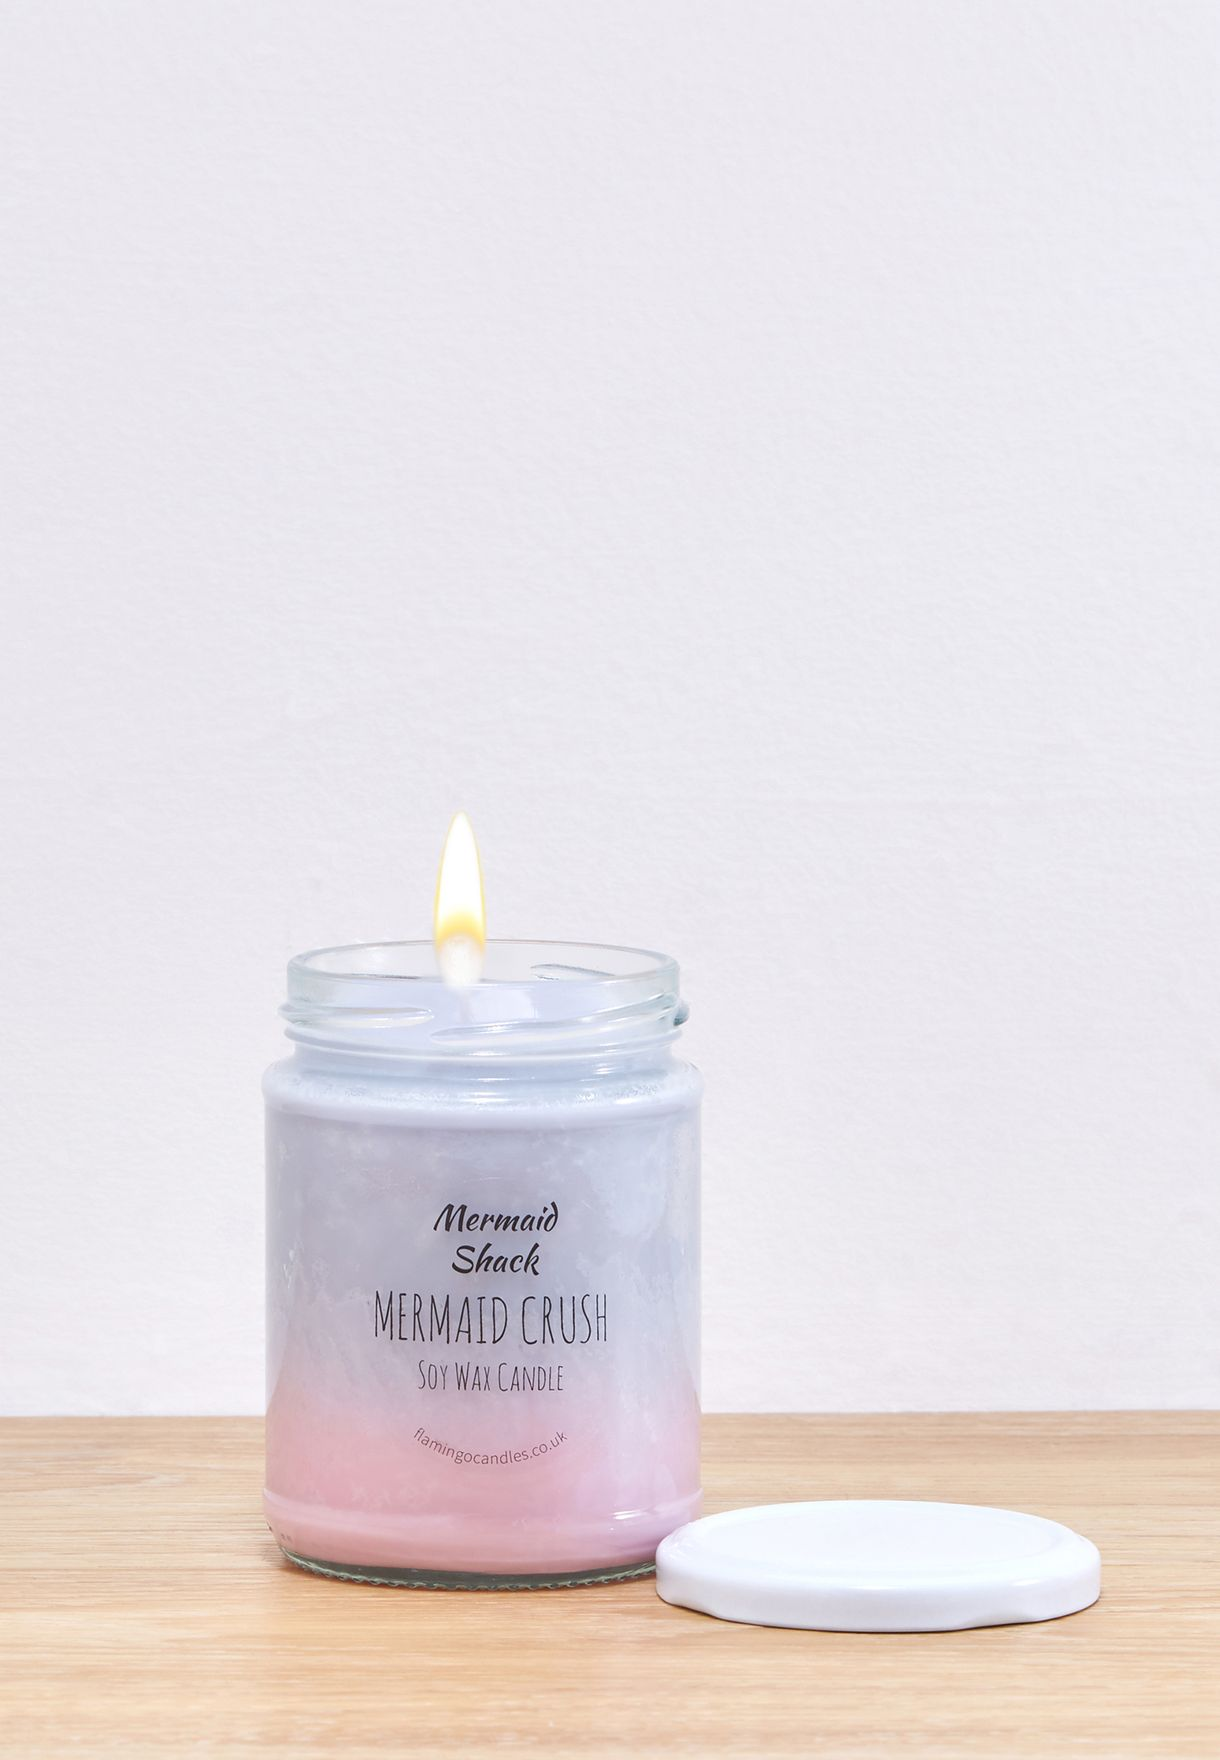 Mermaid Crush Ombre Jar Candle